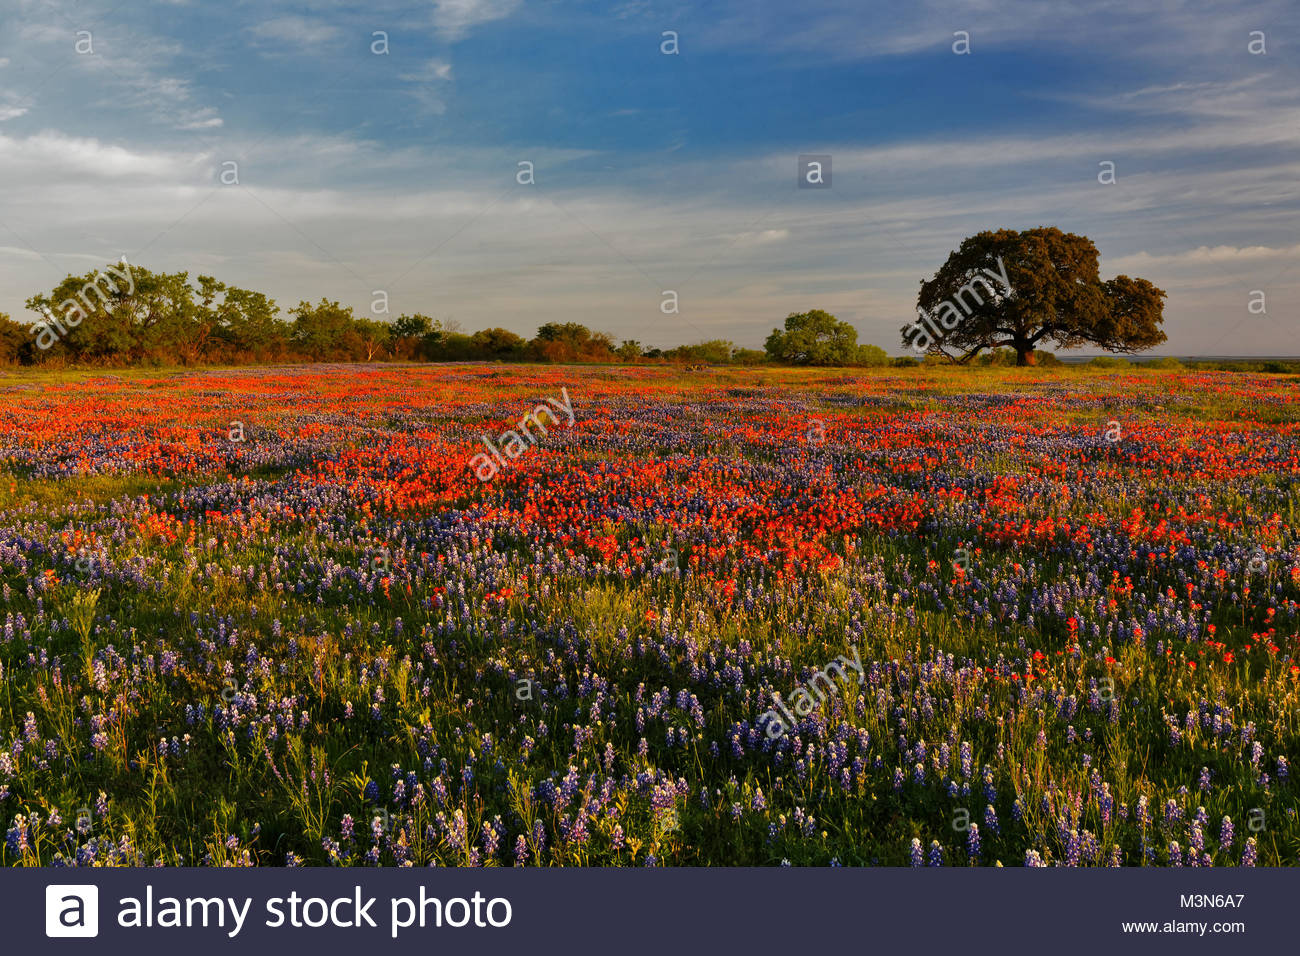 A field of Texas wildflowers at sunrise - Stock Image